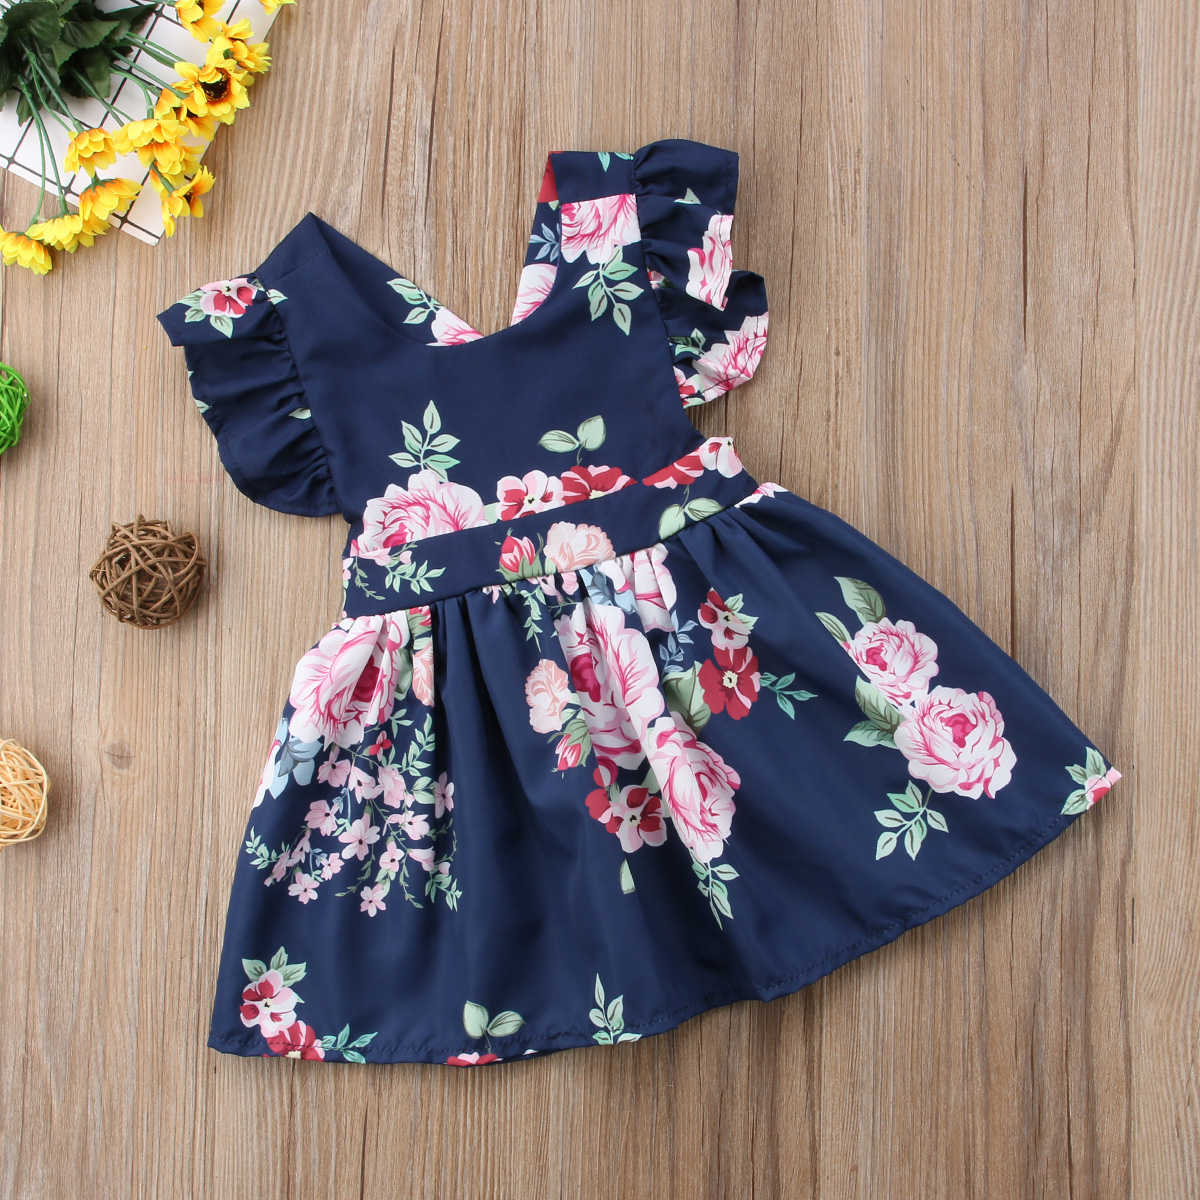 Dresses for Girls,POTO Newborn Toddler Baby Girls Solid Flower Butterfly Backless Casual Dress Clothes Sundress